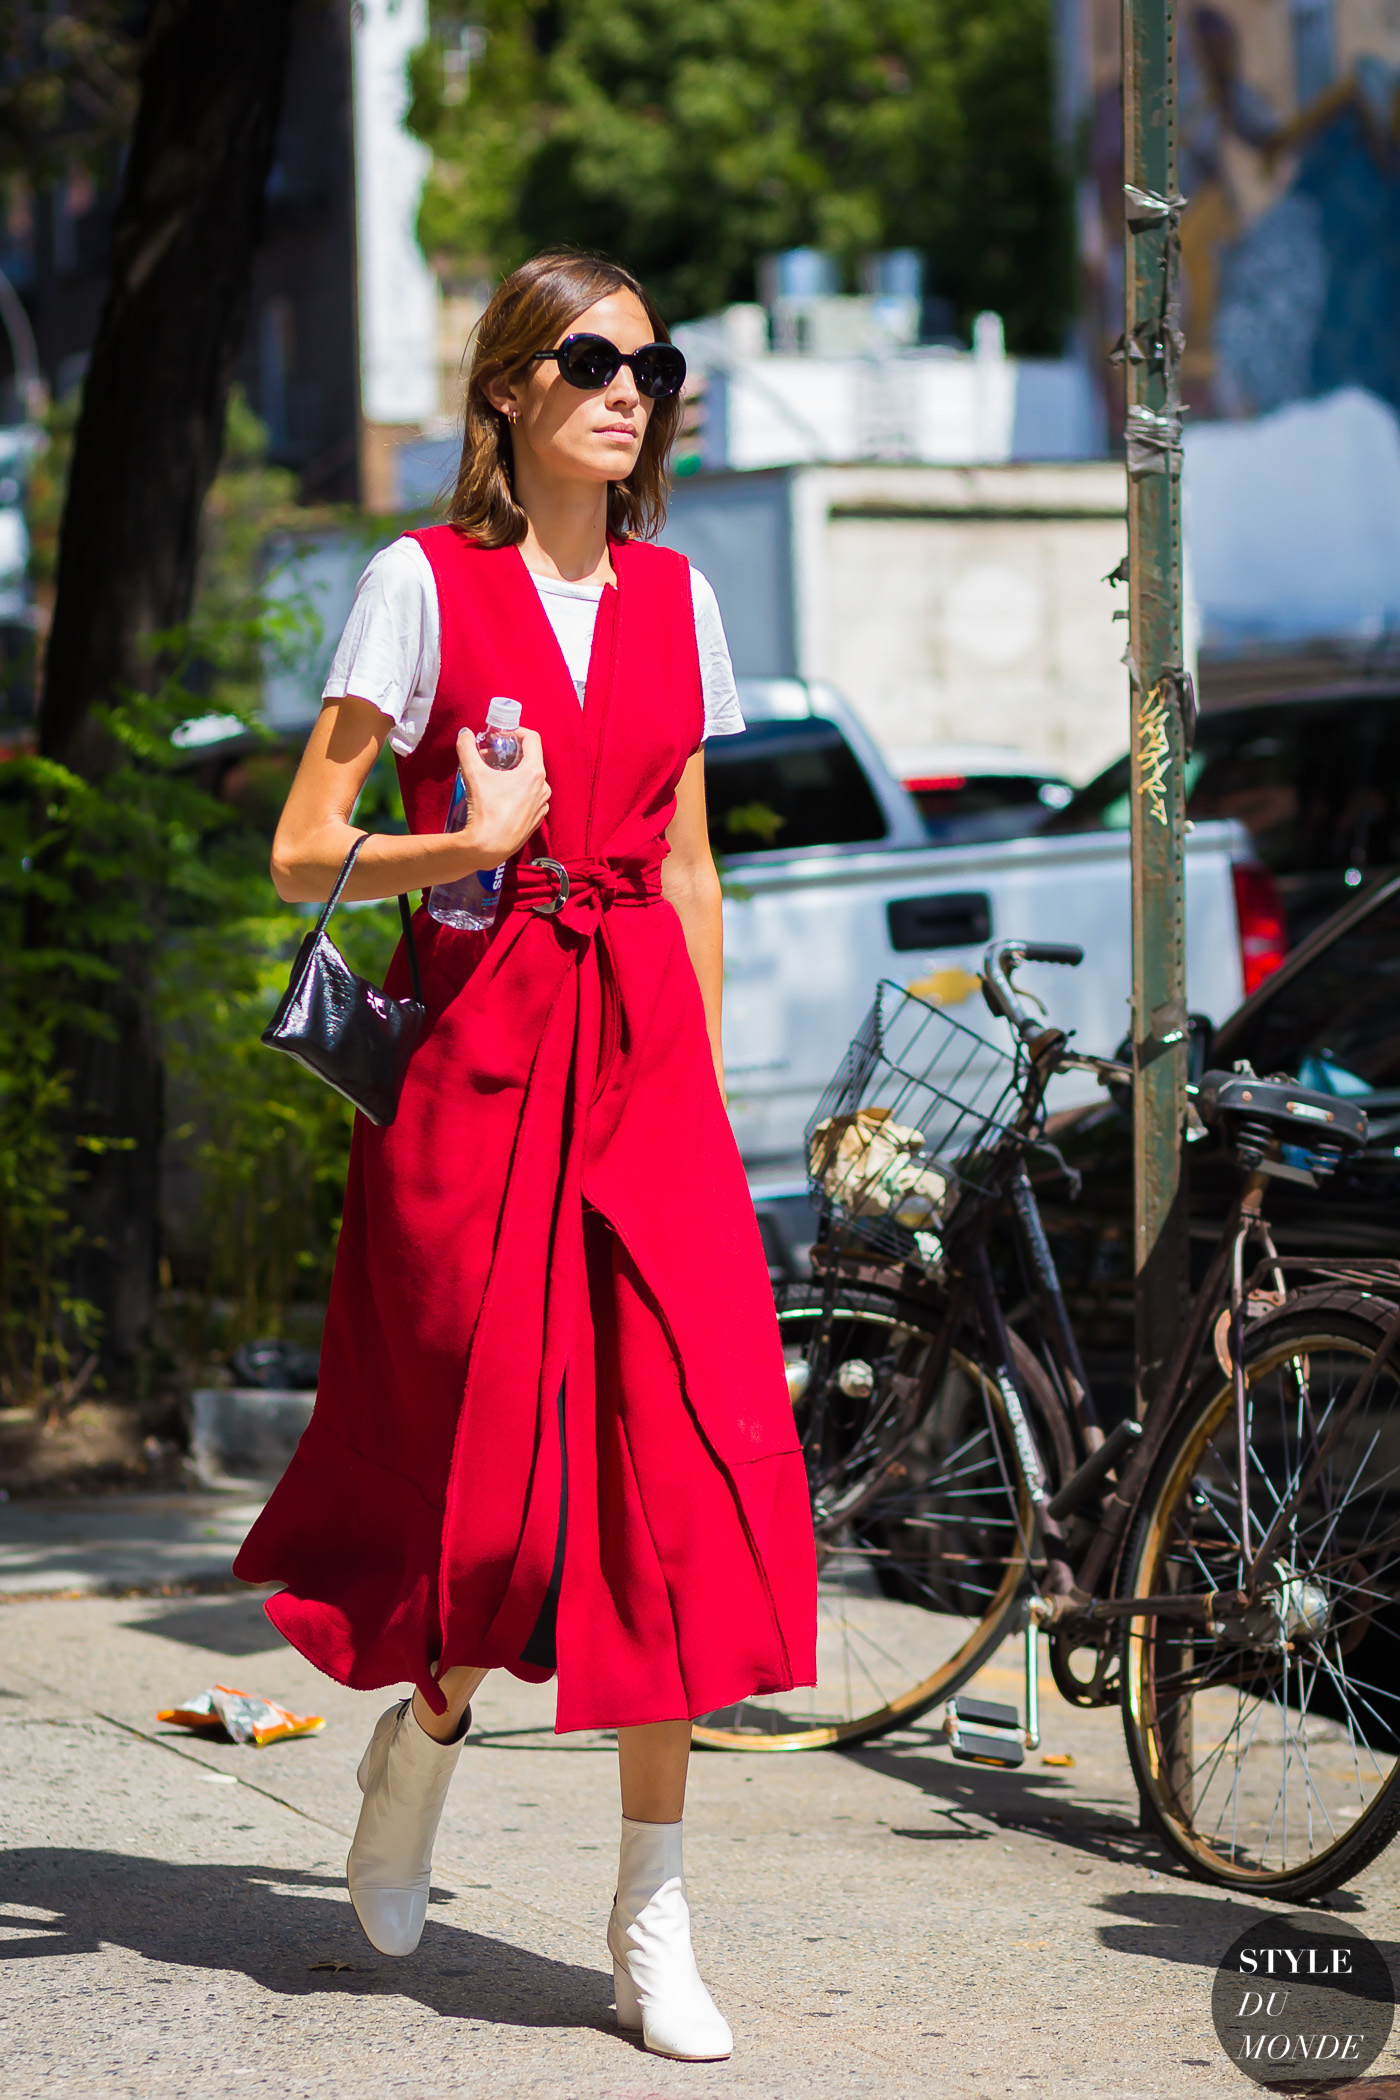 alexa-chung-by-styledumonde-street-style-fashion-photography